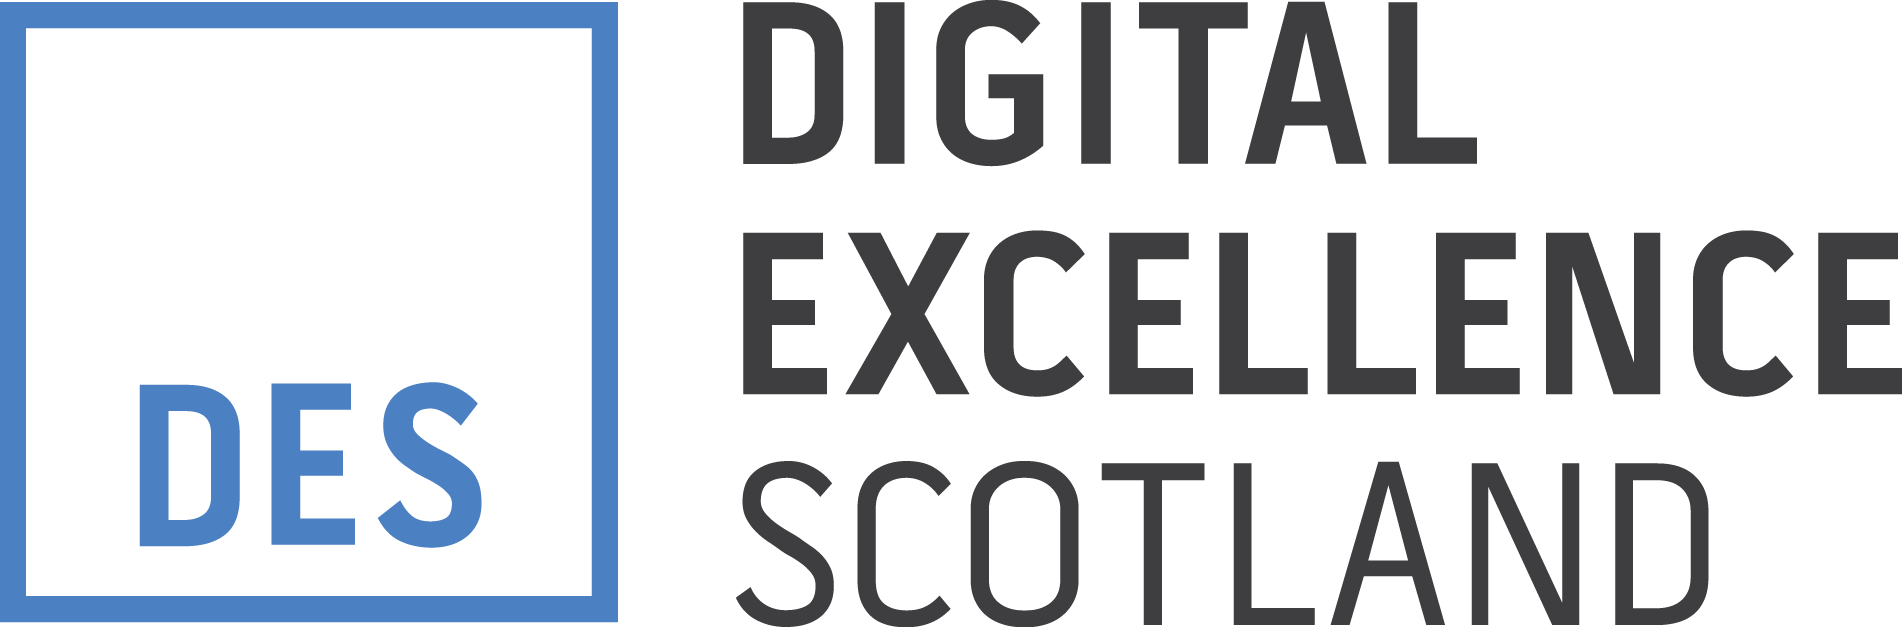 Digital Excellence Scotland